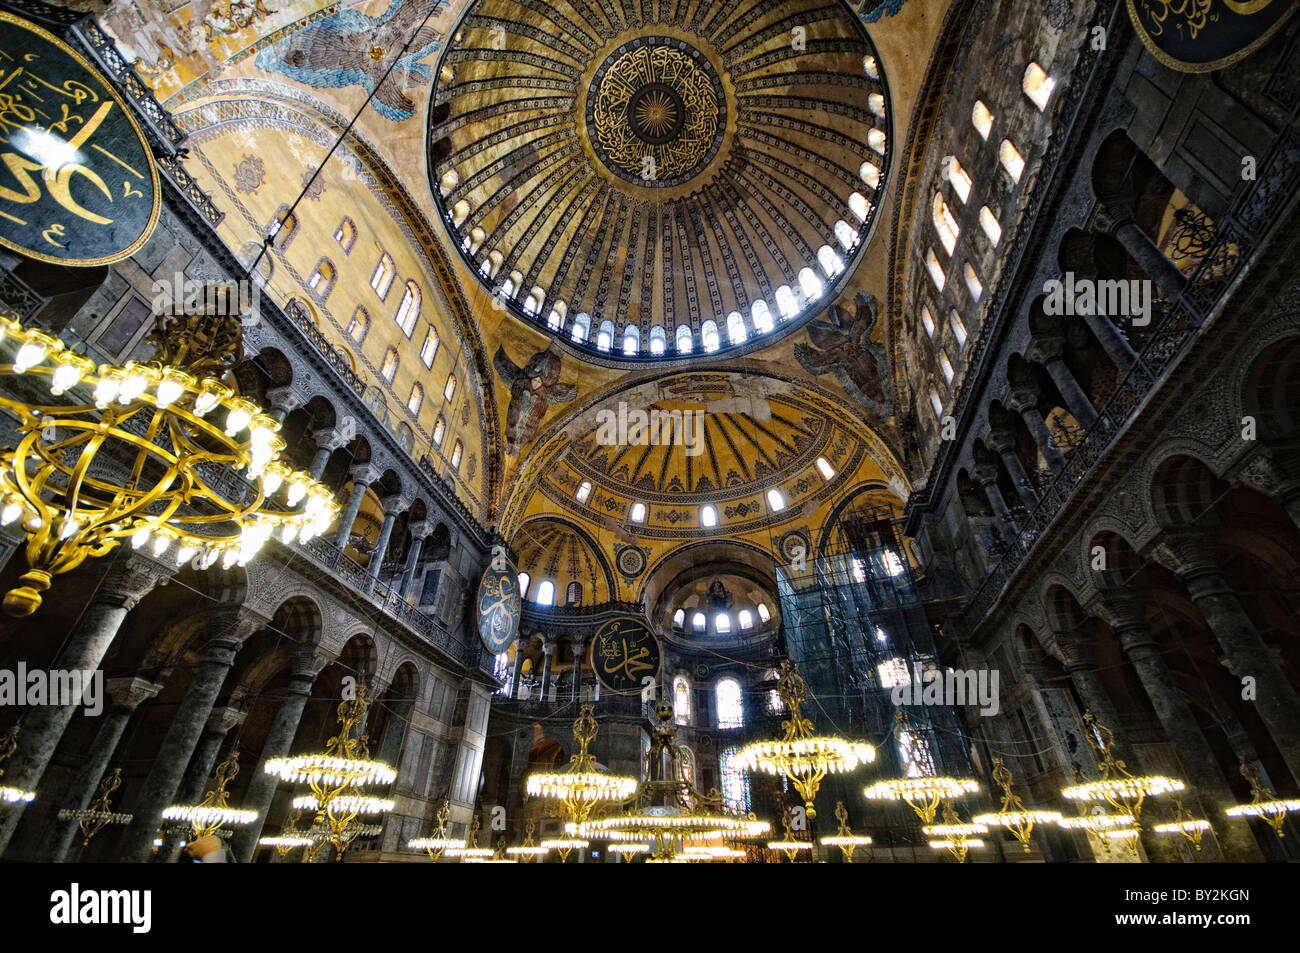 The main central dome and chandeliers in hagia sophia in istanbul the main central dome and chandeliers in hagia sophia in istanbul turkey originally built as a christian cathedral then converted to a muslim mosque in aloadofball Images